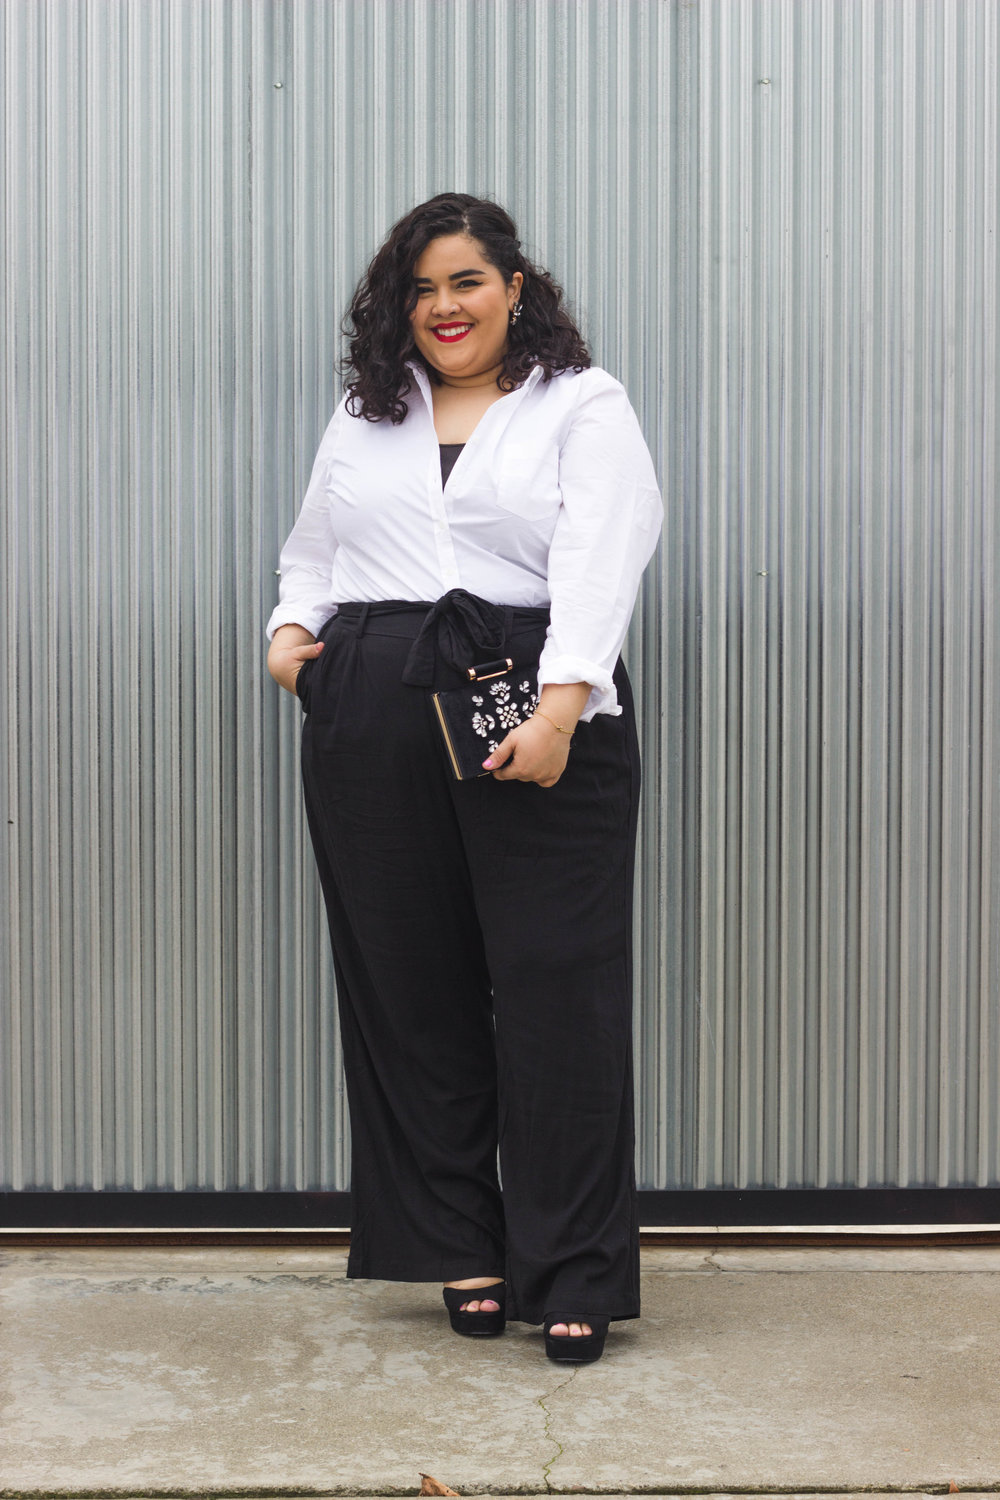 TorridTop1Way (38 of 119).jpg